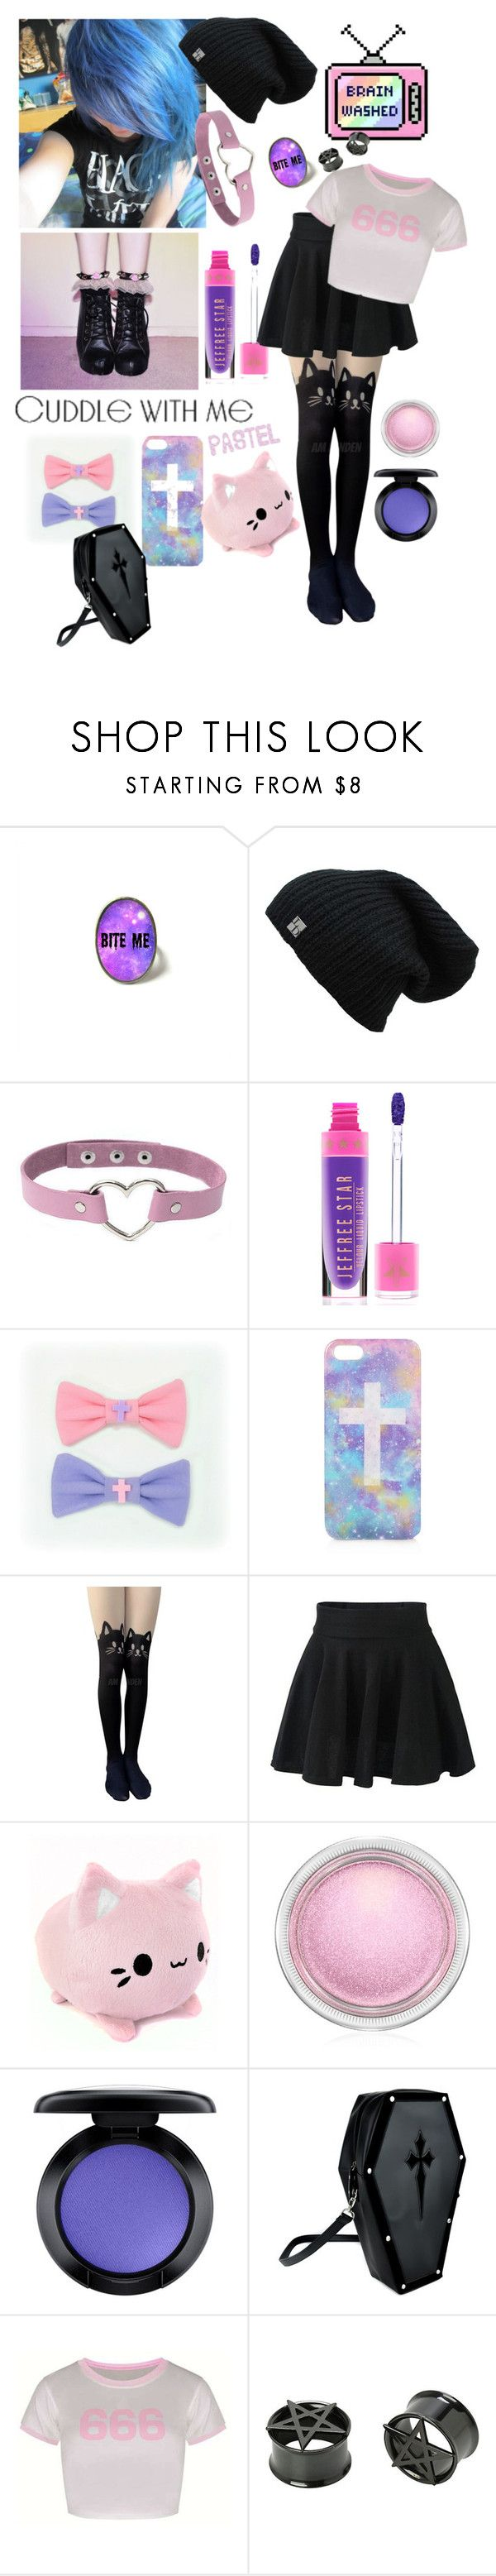 """One of my Favorite Pastel Goth Sets Now that I've Made"" by crybaby1117 ❤ liked on Polyvore featuring Topshop and MAC Cosmetics"